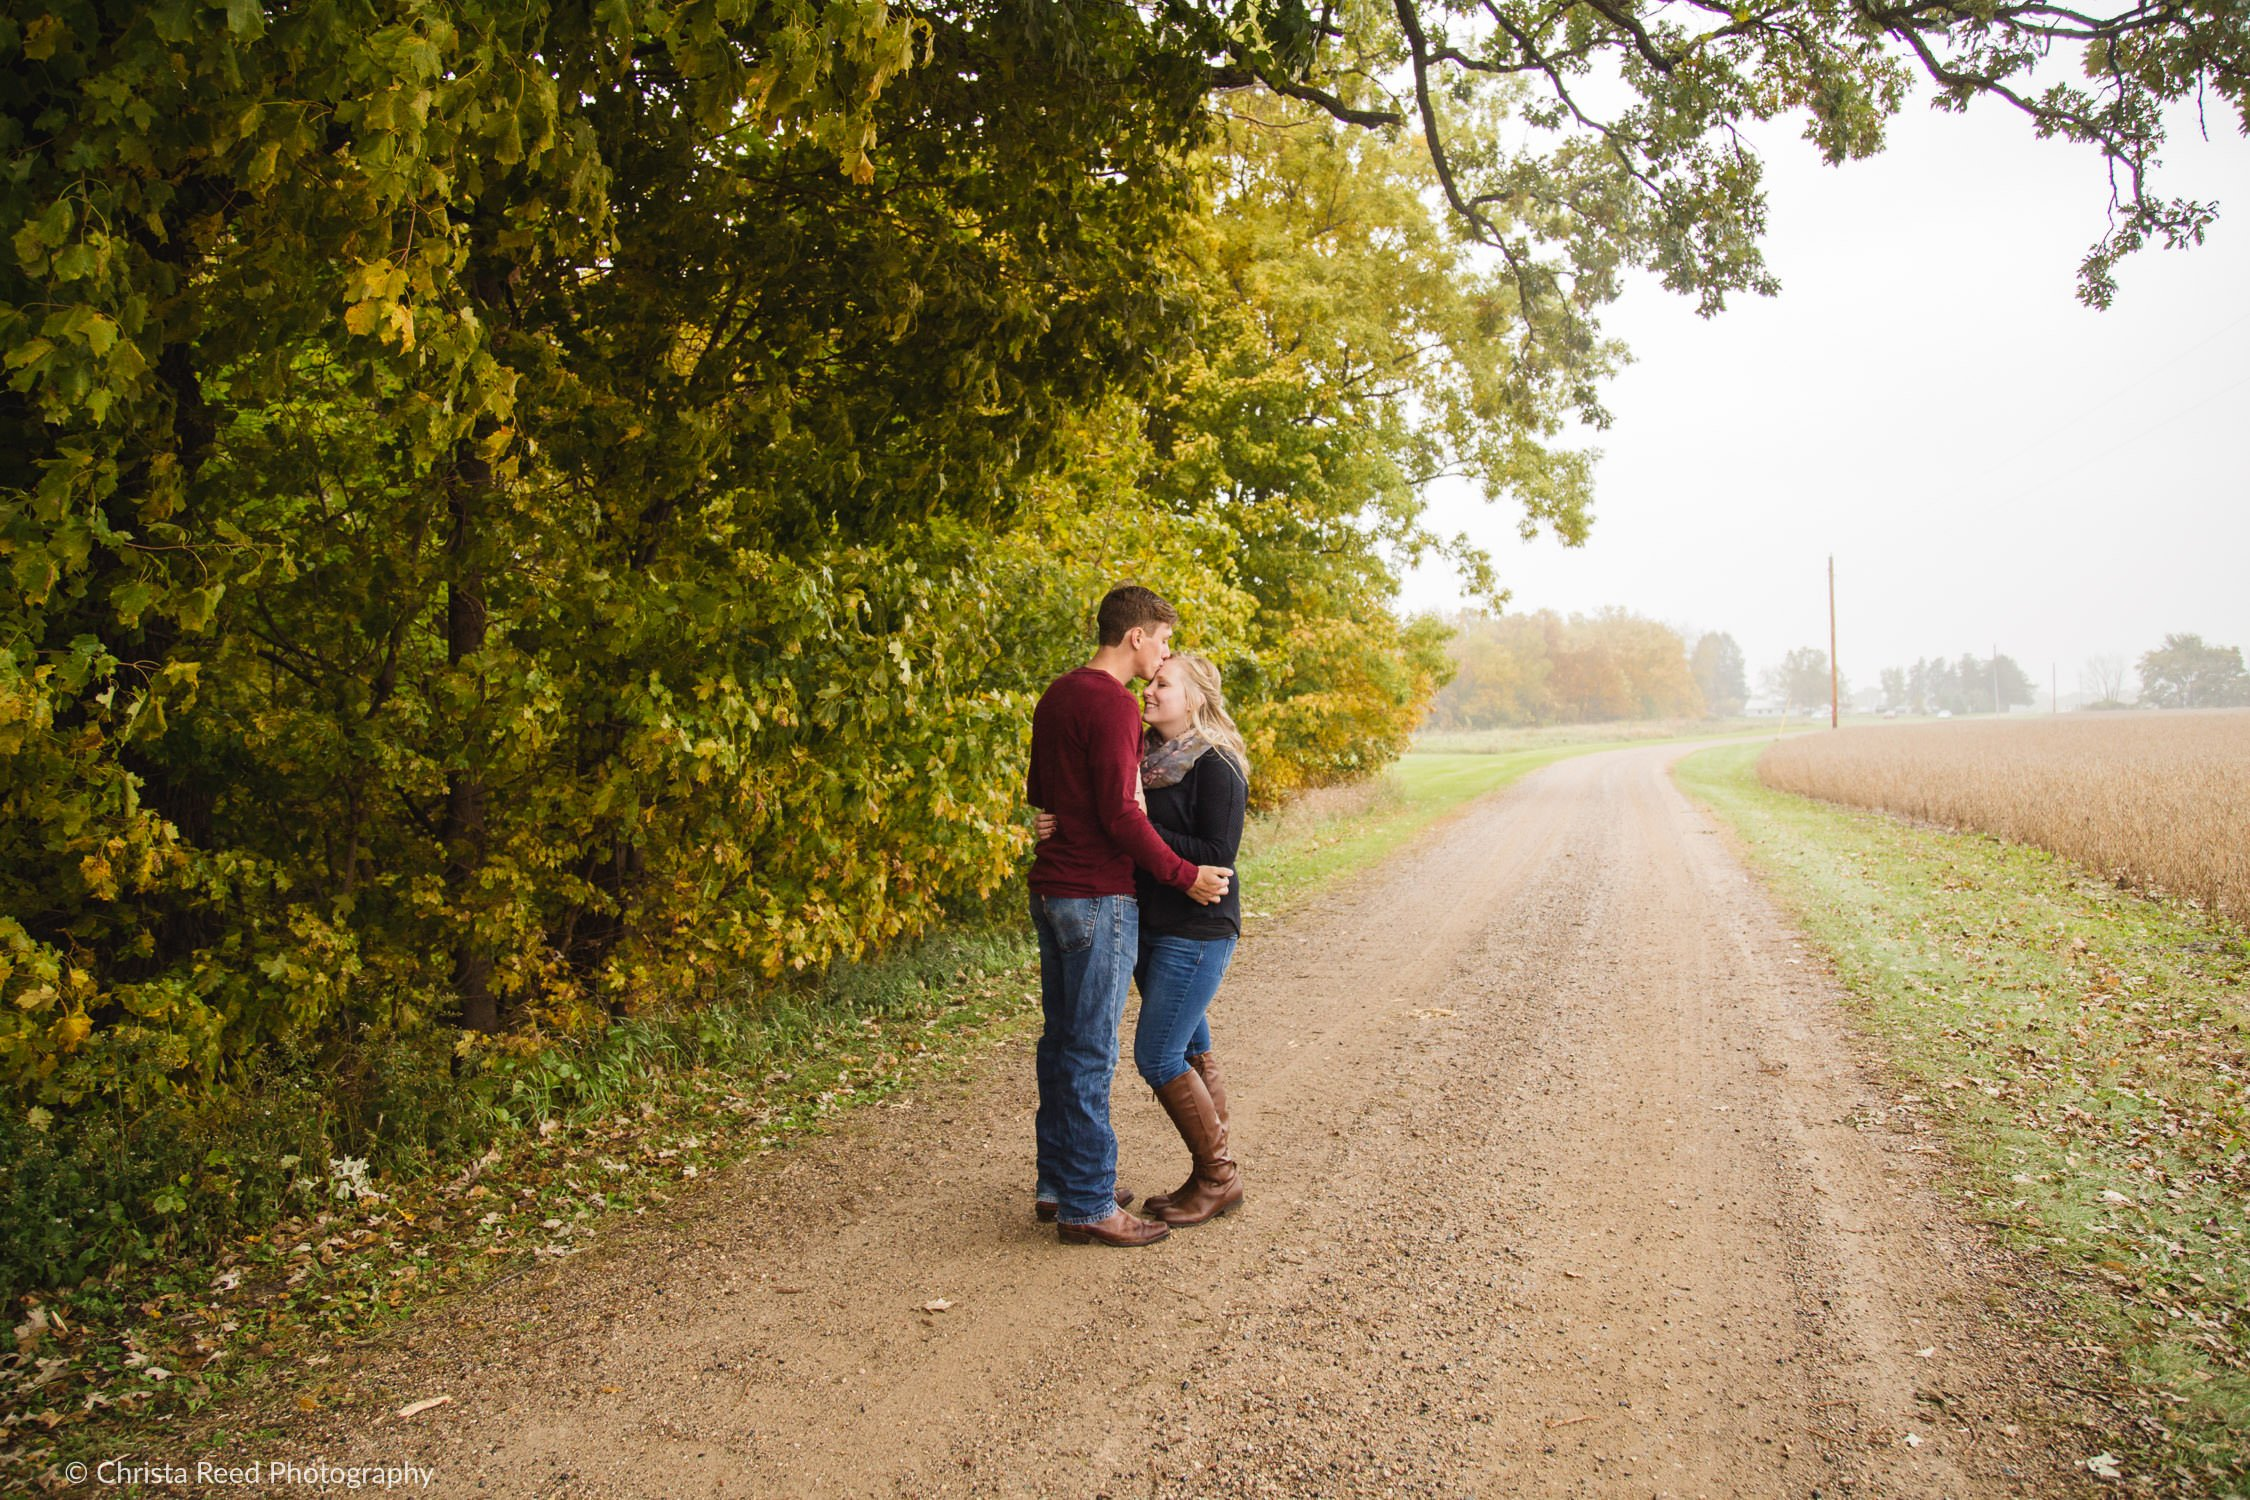 romantic engagement pictures in the country on a dirt road.